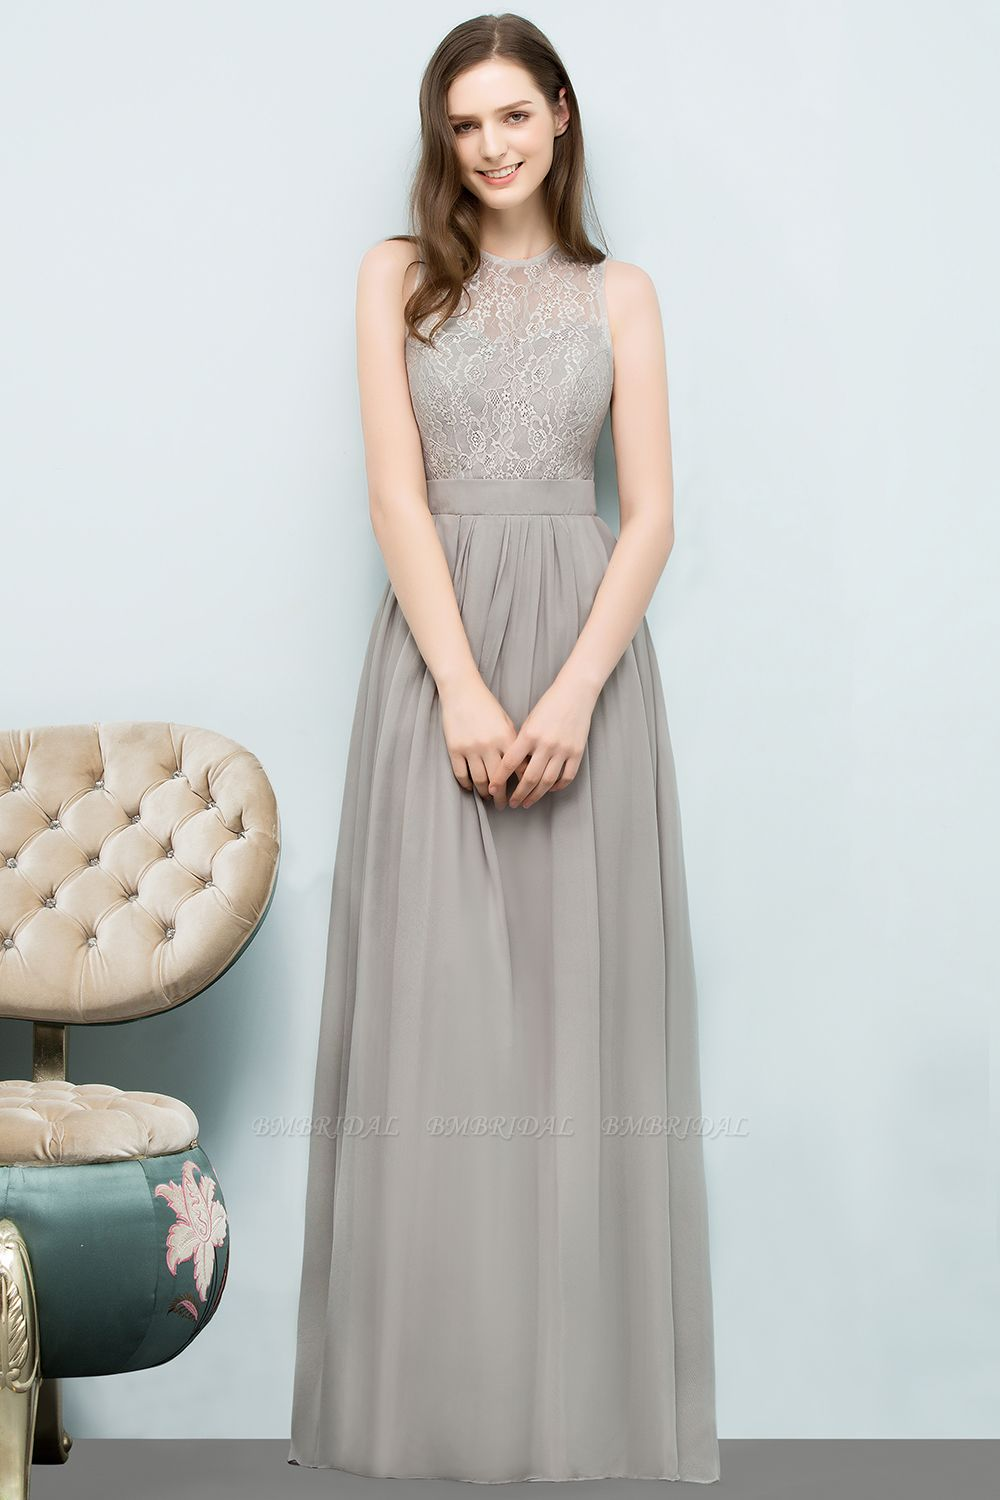 Affordable Lace Sleeveless Silver Bridesmaid Dress with Ruffles